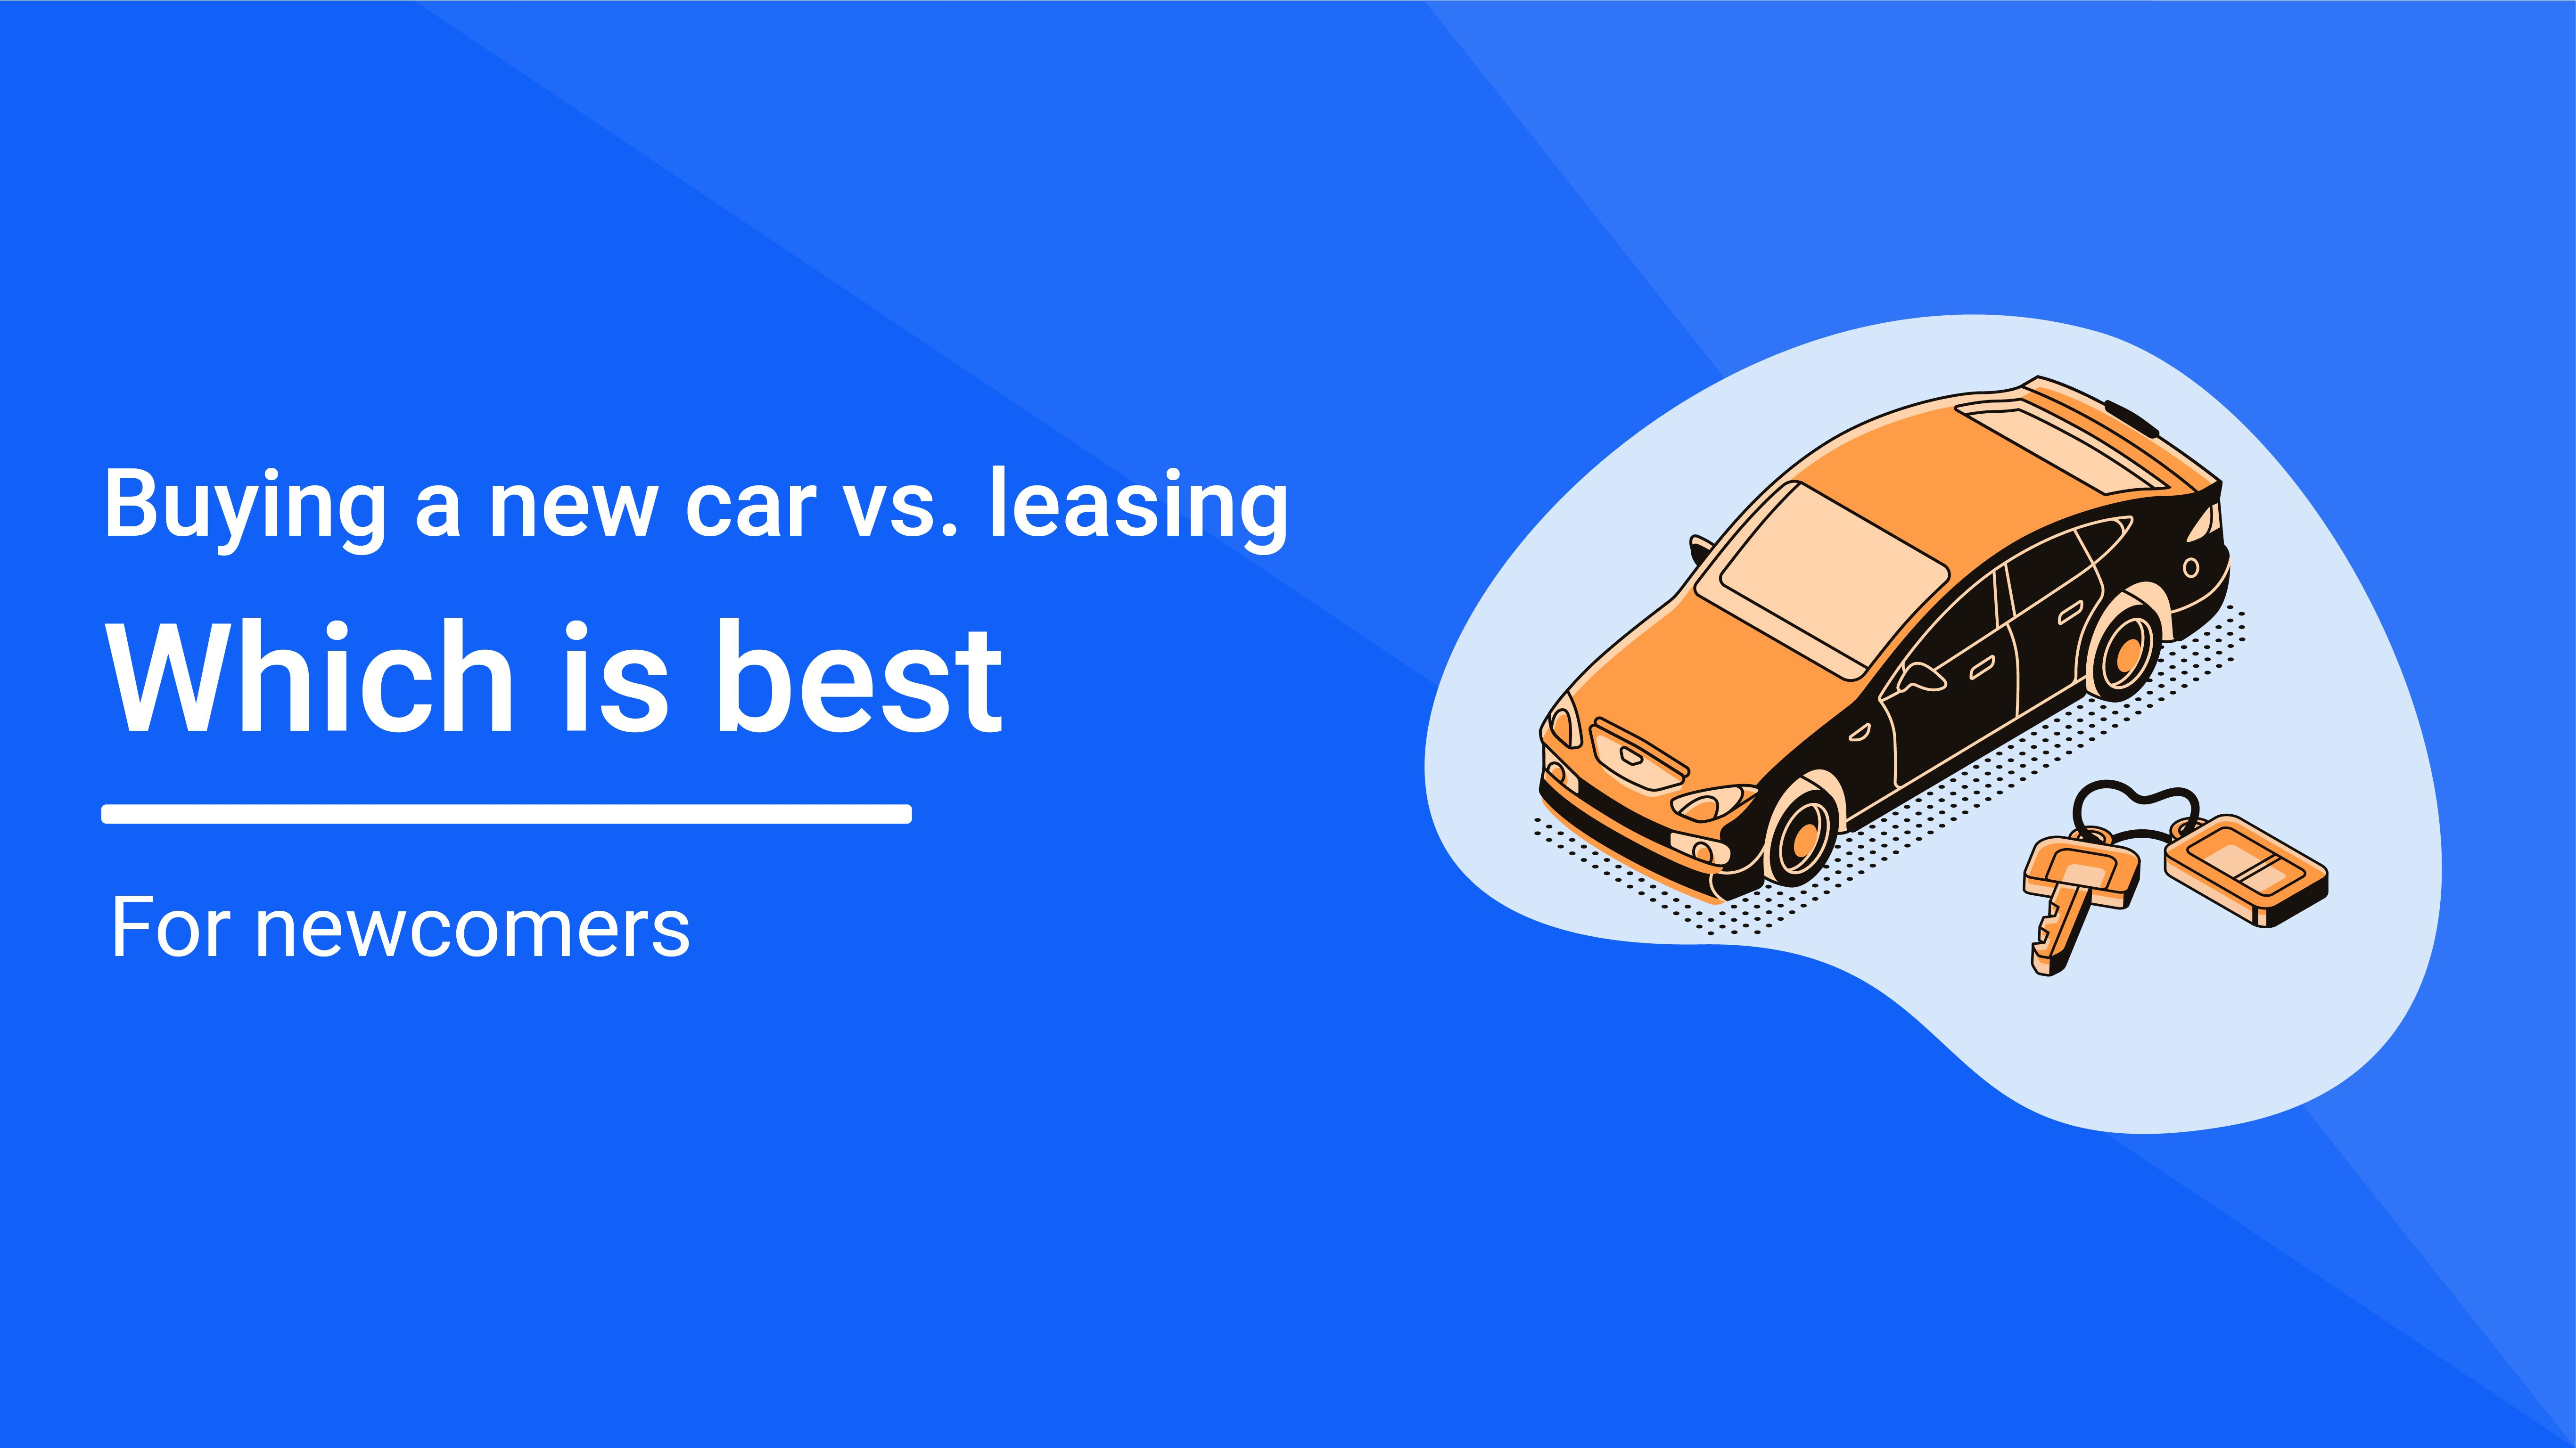 Buying new car vs. leasing: Which is best for a newcomer